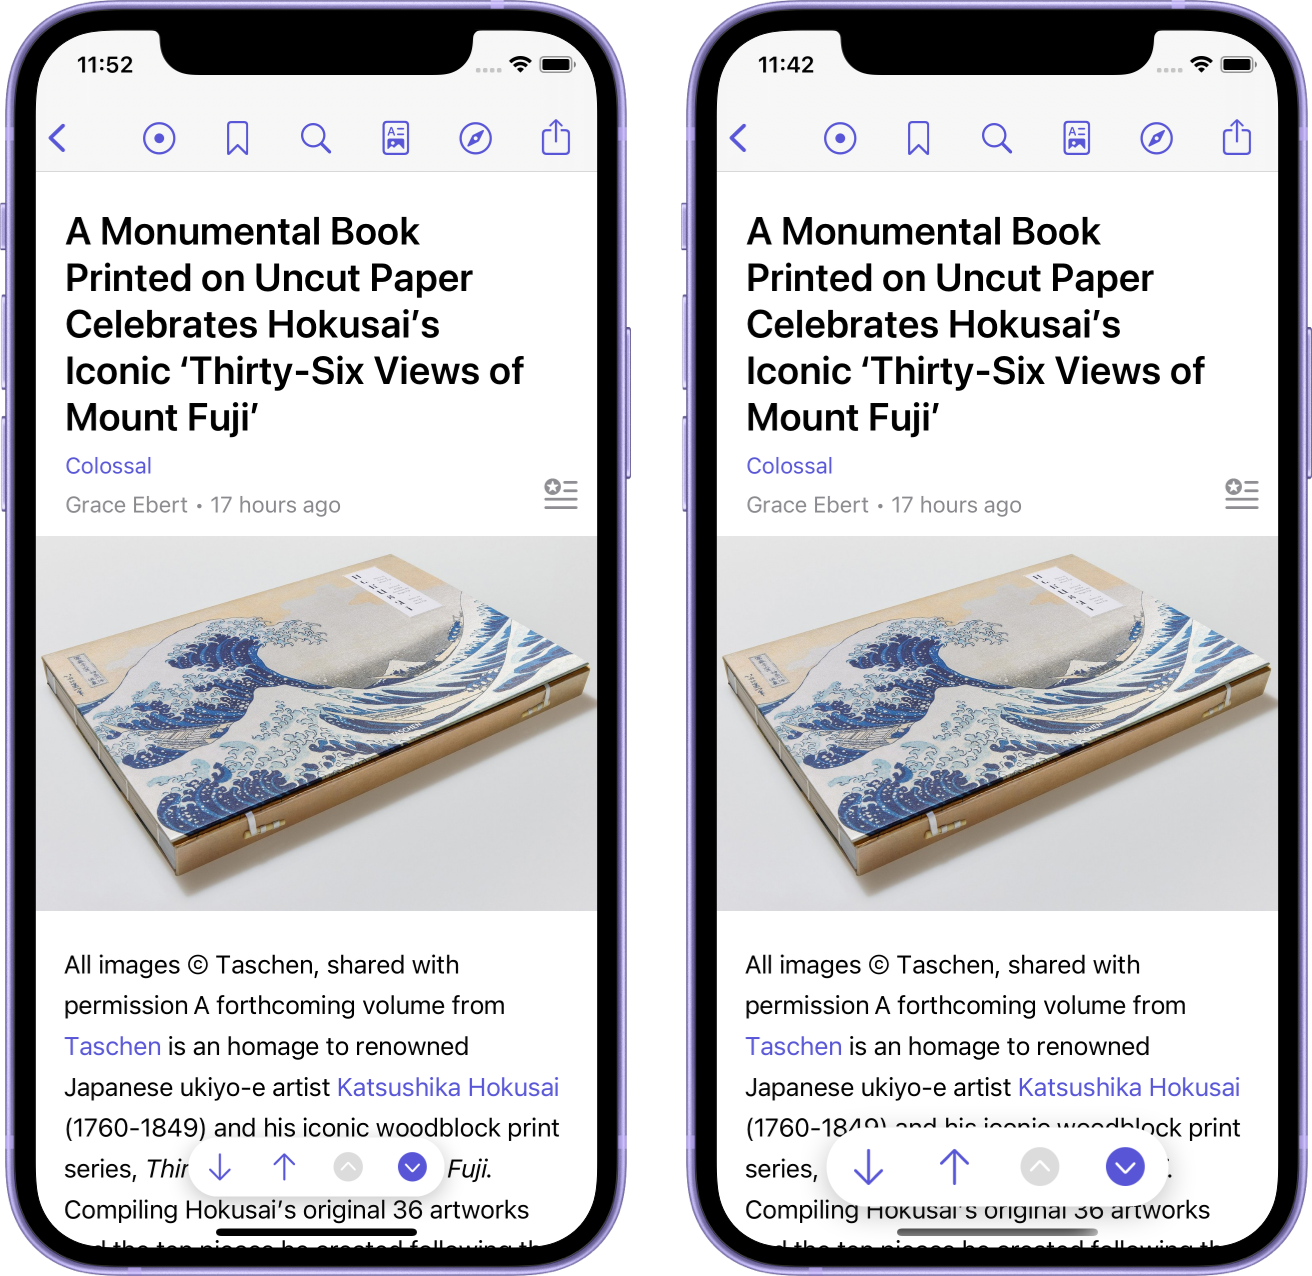 The two new reader bar sizes: The small size on the left and the large size on the right.